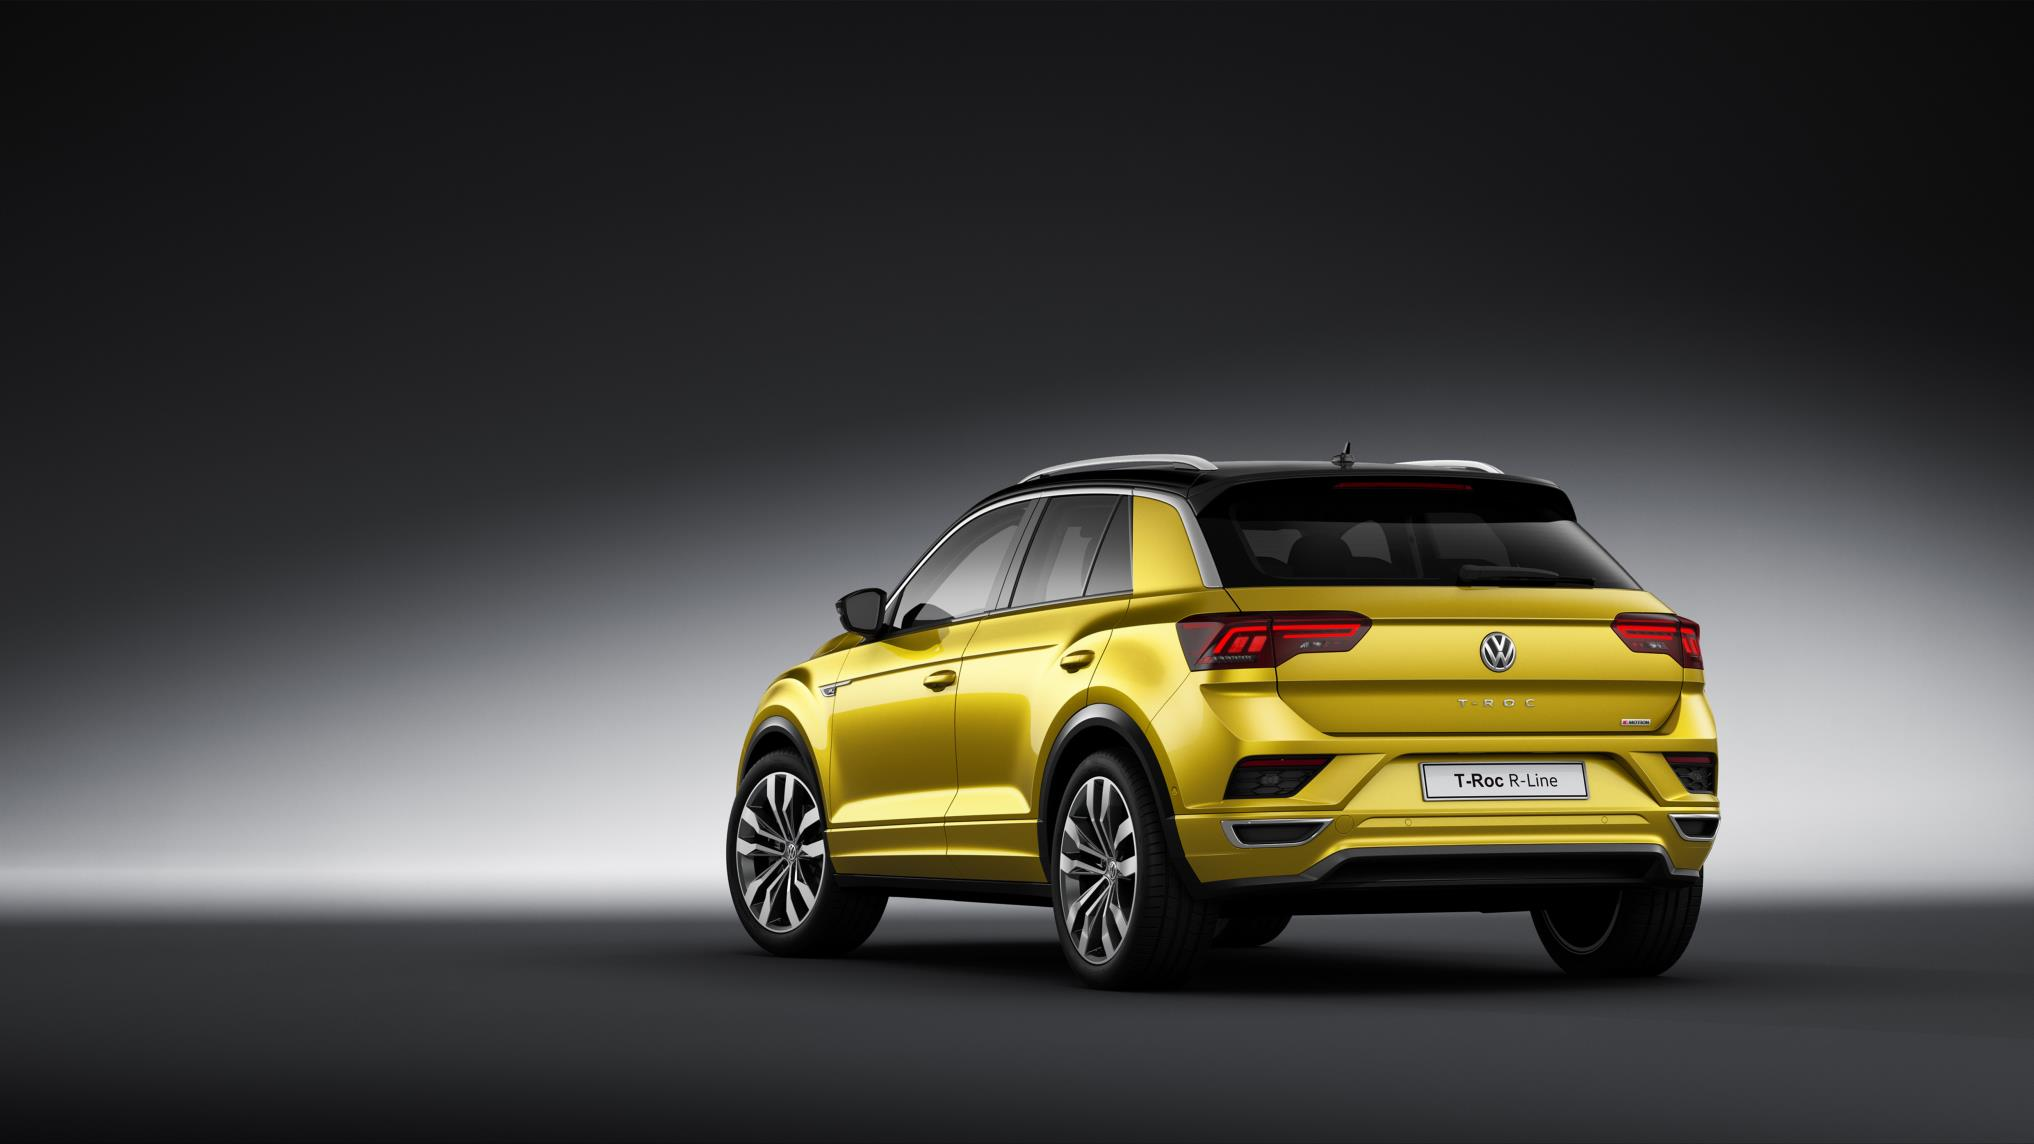 Volkswagen T-Roc and Tiguan Allspace now available in R-Line trim